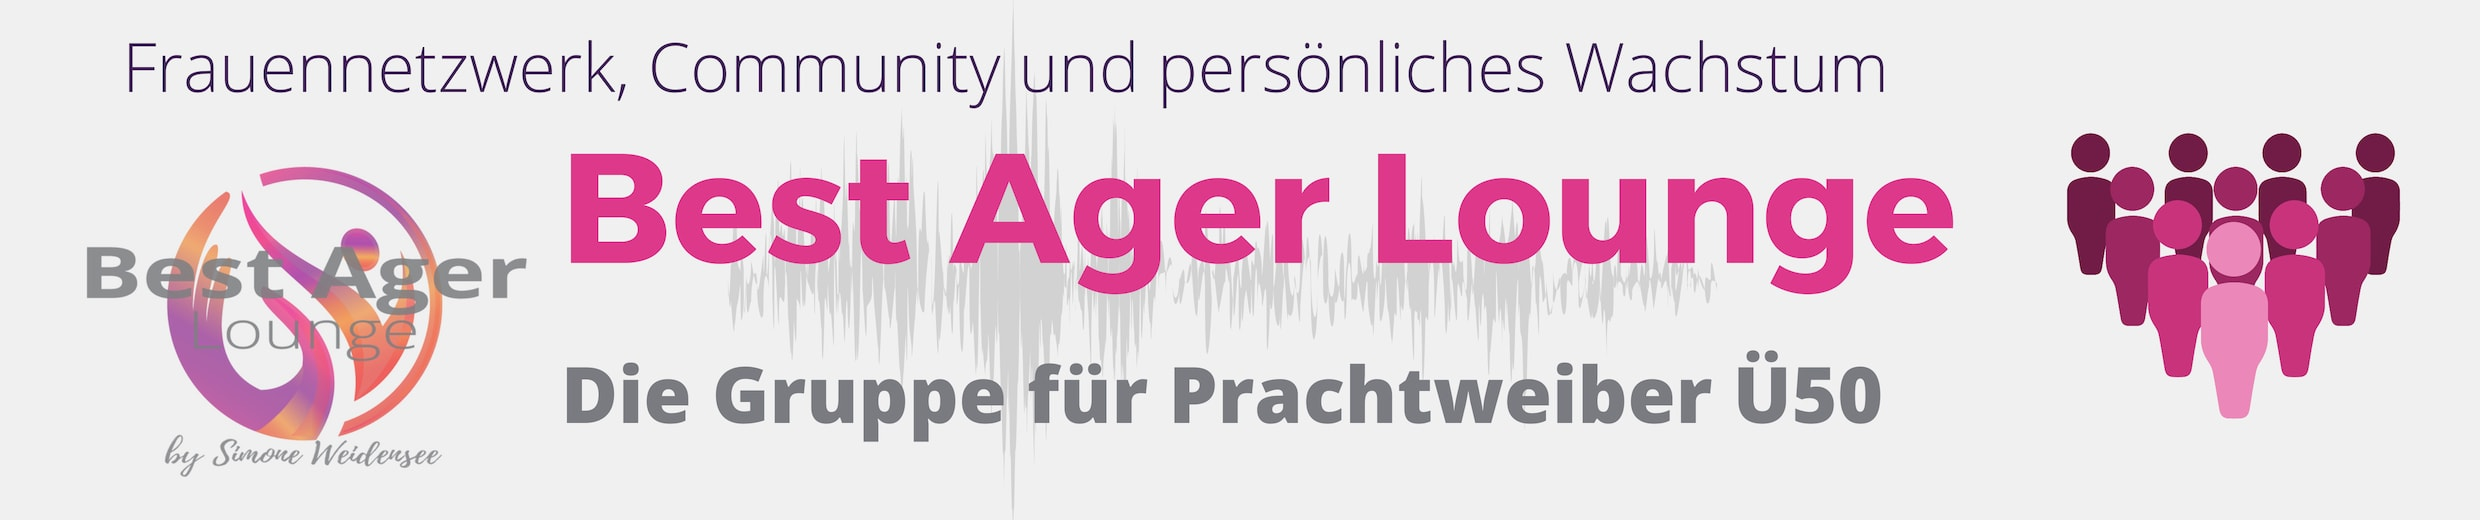 Best Ager Lounge, Simone Weidensee, Frauen Ü50, 50Plus, community, Facebookgruppe, Frauennetzwerk 50Plus, Lifestyle 50 plus, Facebook Gruppe Ü50,